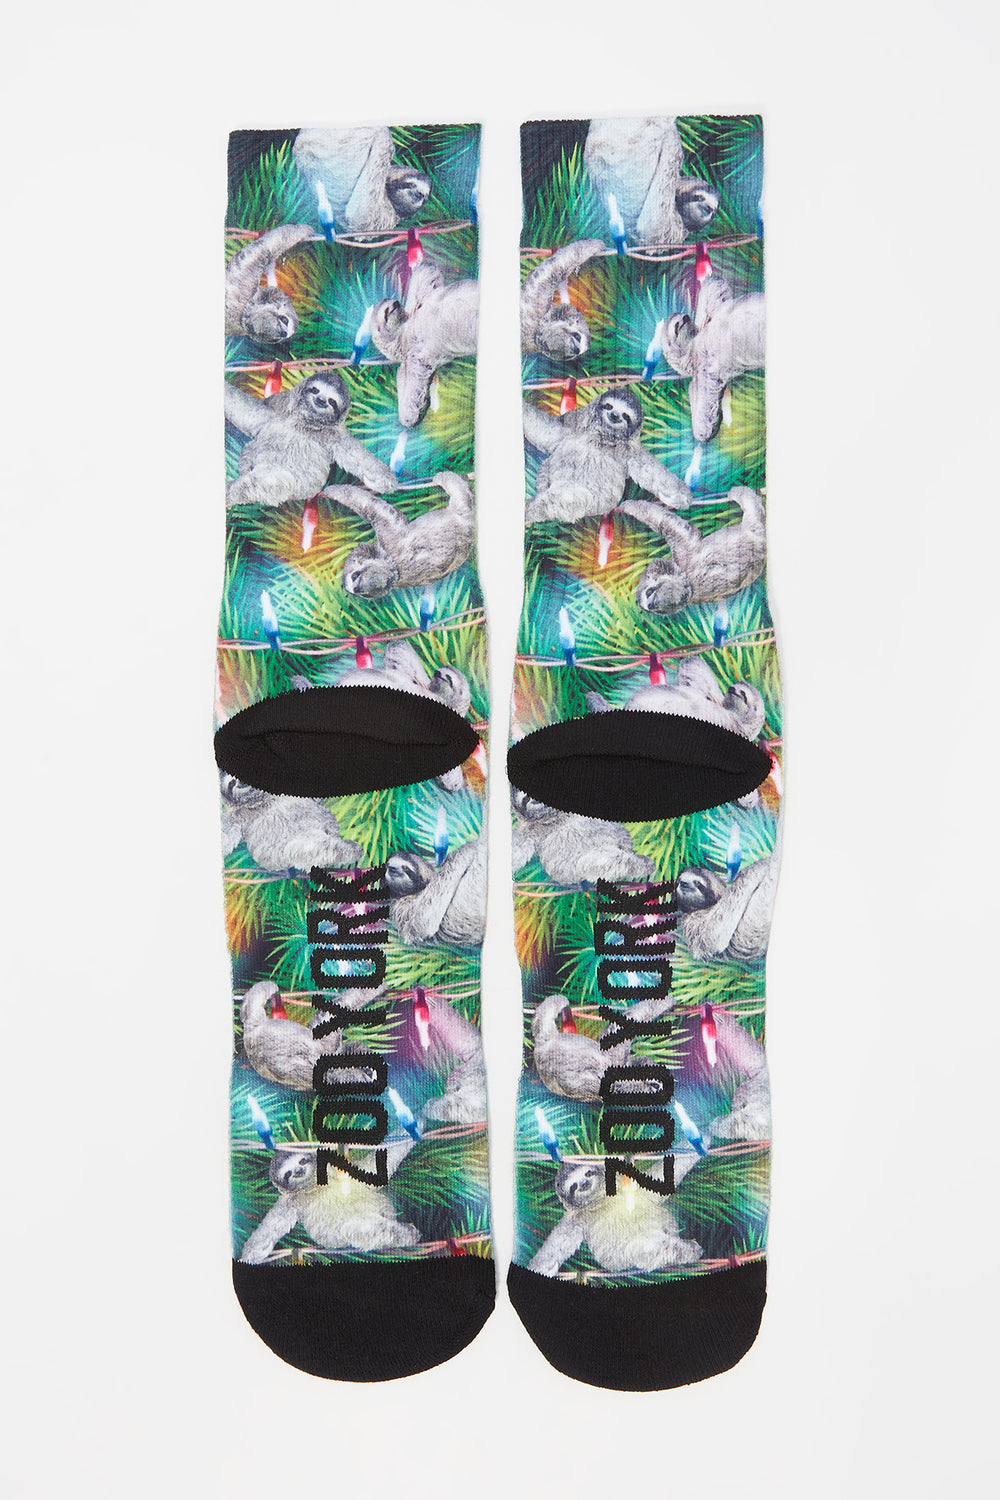 Zoo York Mens Sloth Crew Socks Green